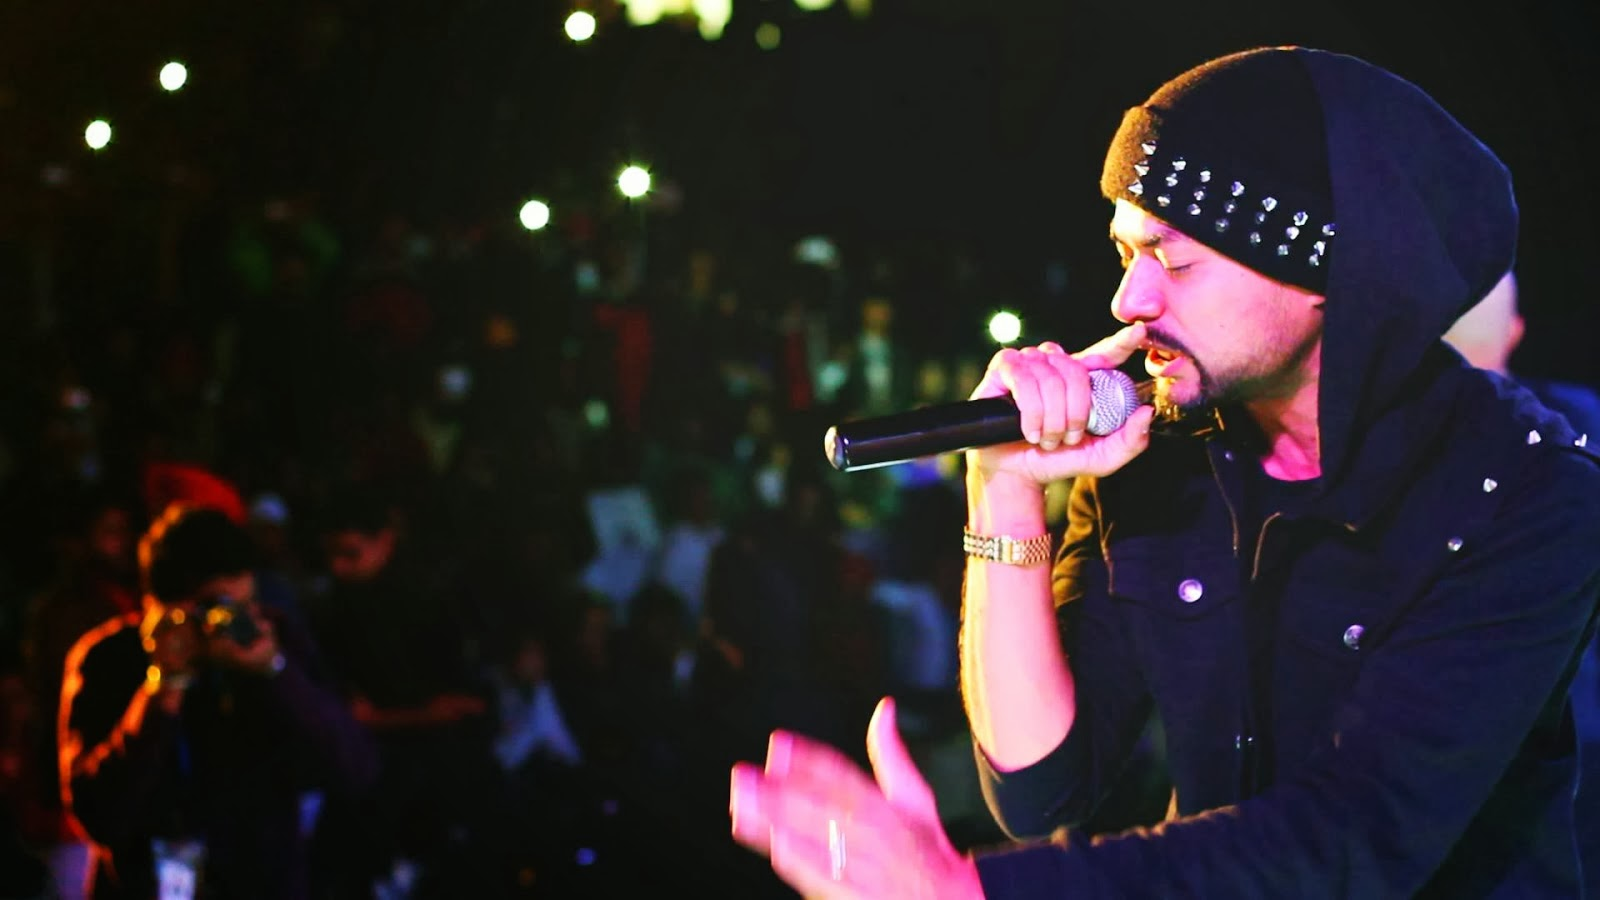 Bohemia Da Rap Star Wallpapers 2014 | www.imgkid.com - The ...